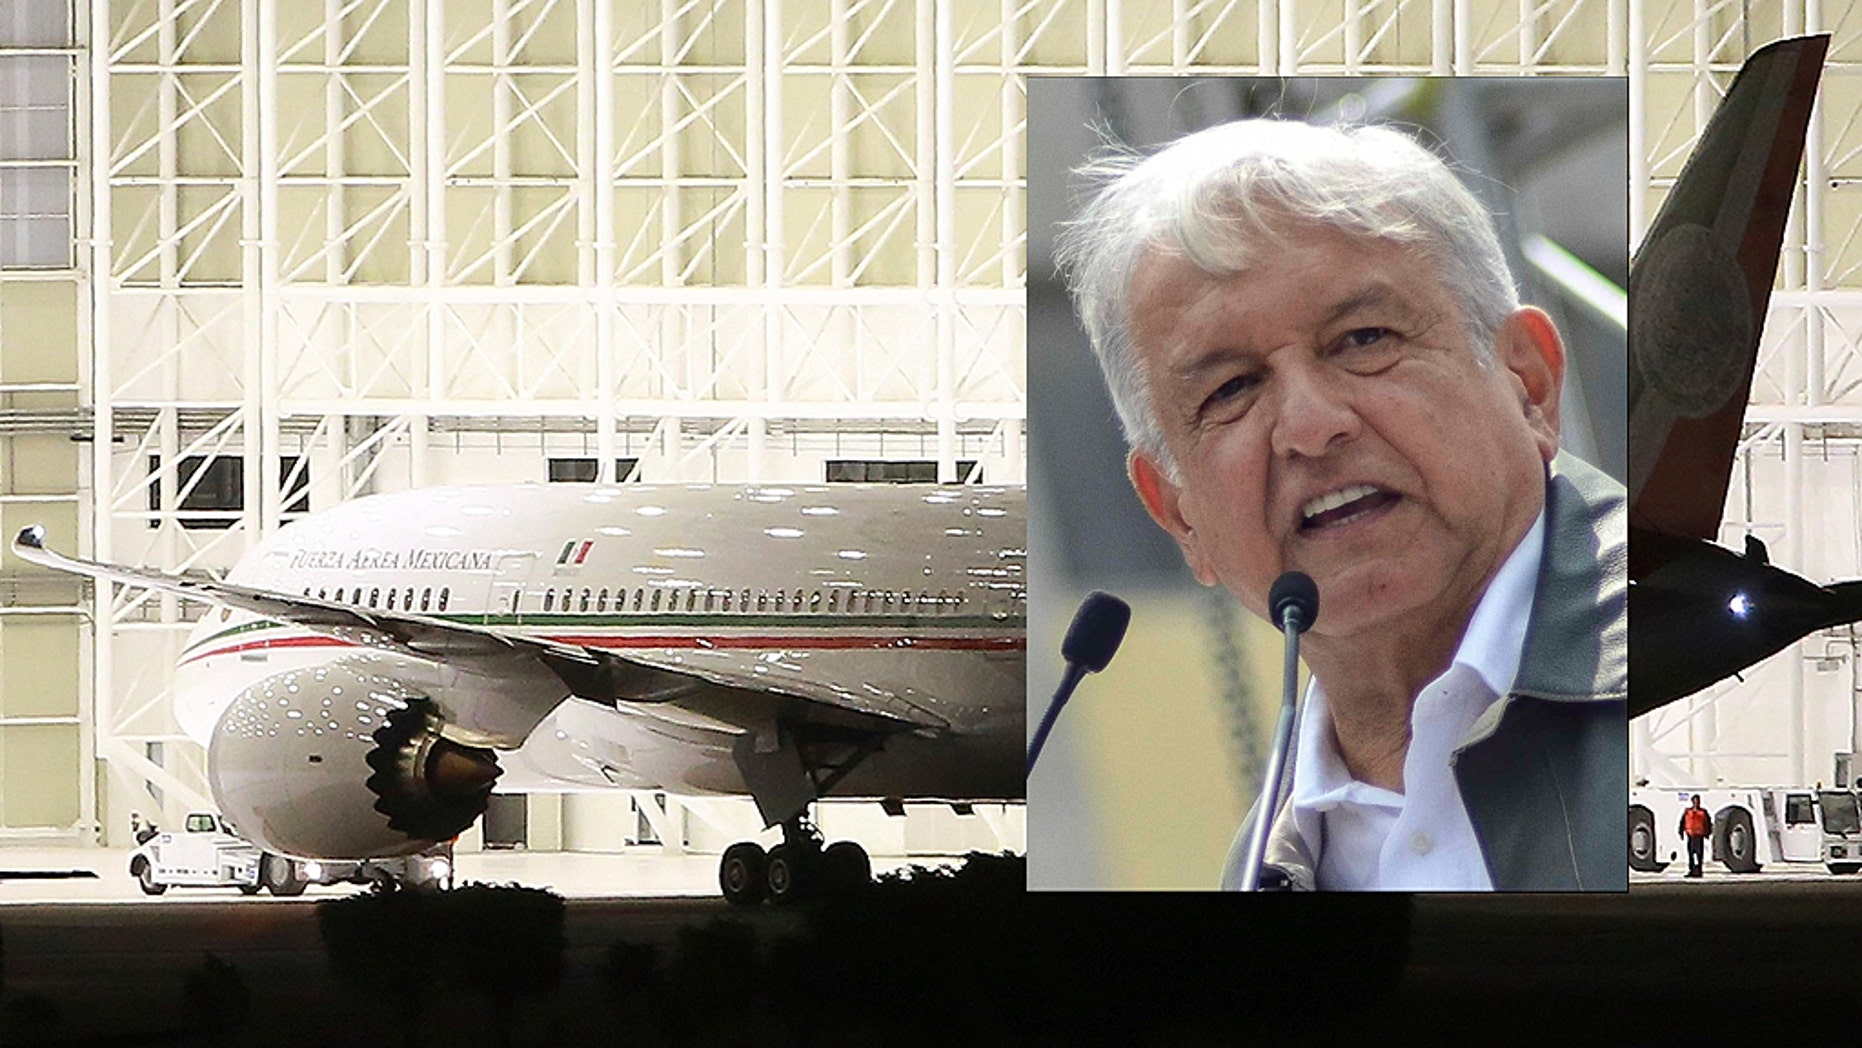 """It's not just an efficient, modern plane — it's a comfy plane, with a bedroom, a restaurant, with lots of space,"" incoming President Andrés Manuel López Obrador said of the presidential Boeing 787-8 Dreamliner he vows to never use."